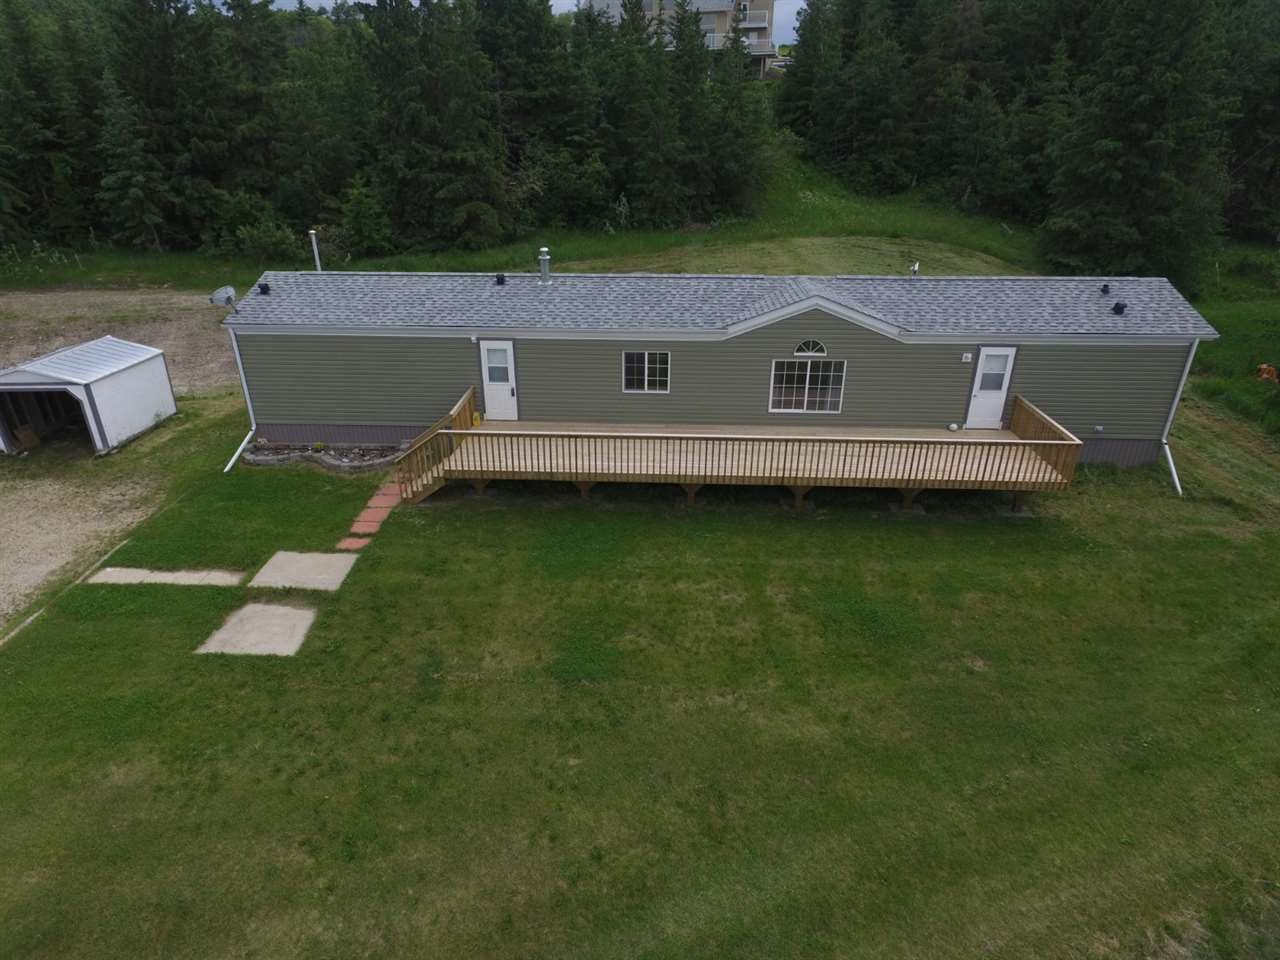 Main Photo: 462082A Hwy 822: Rural Wetaskiwin County Manufactured Home for sale : MLS(r) # E4068989